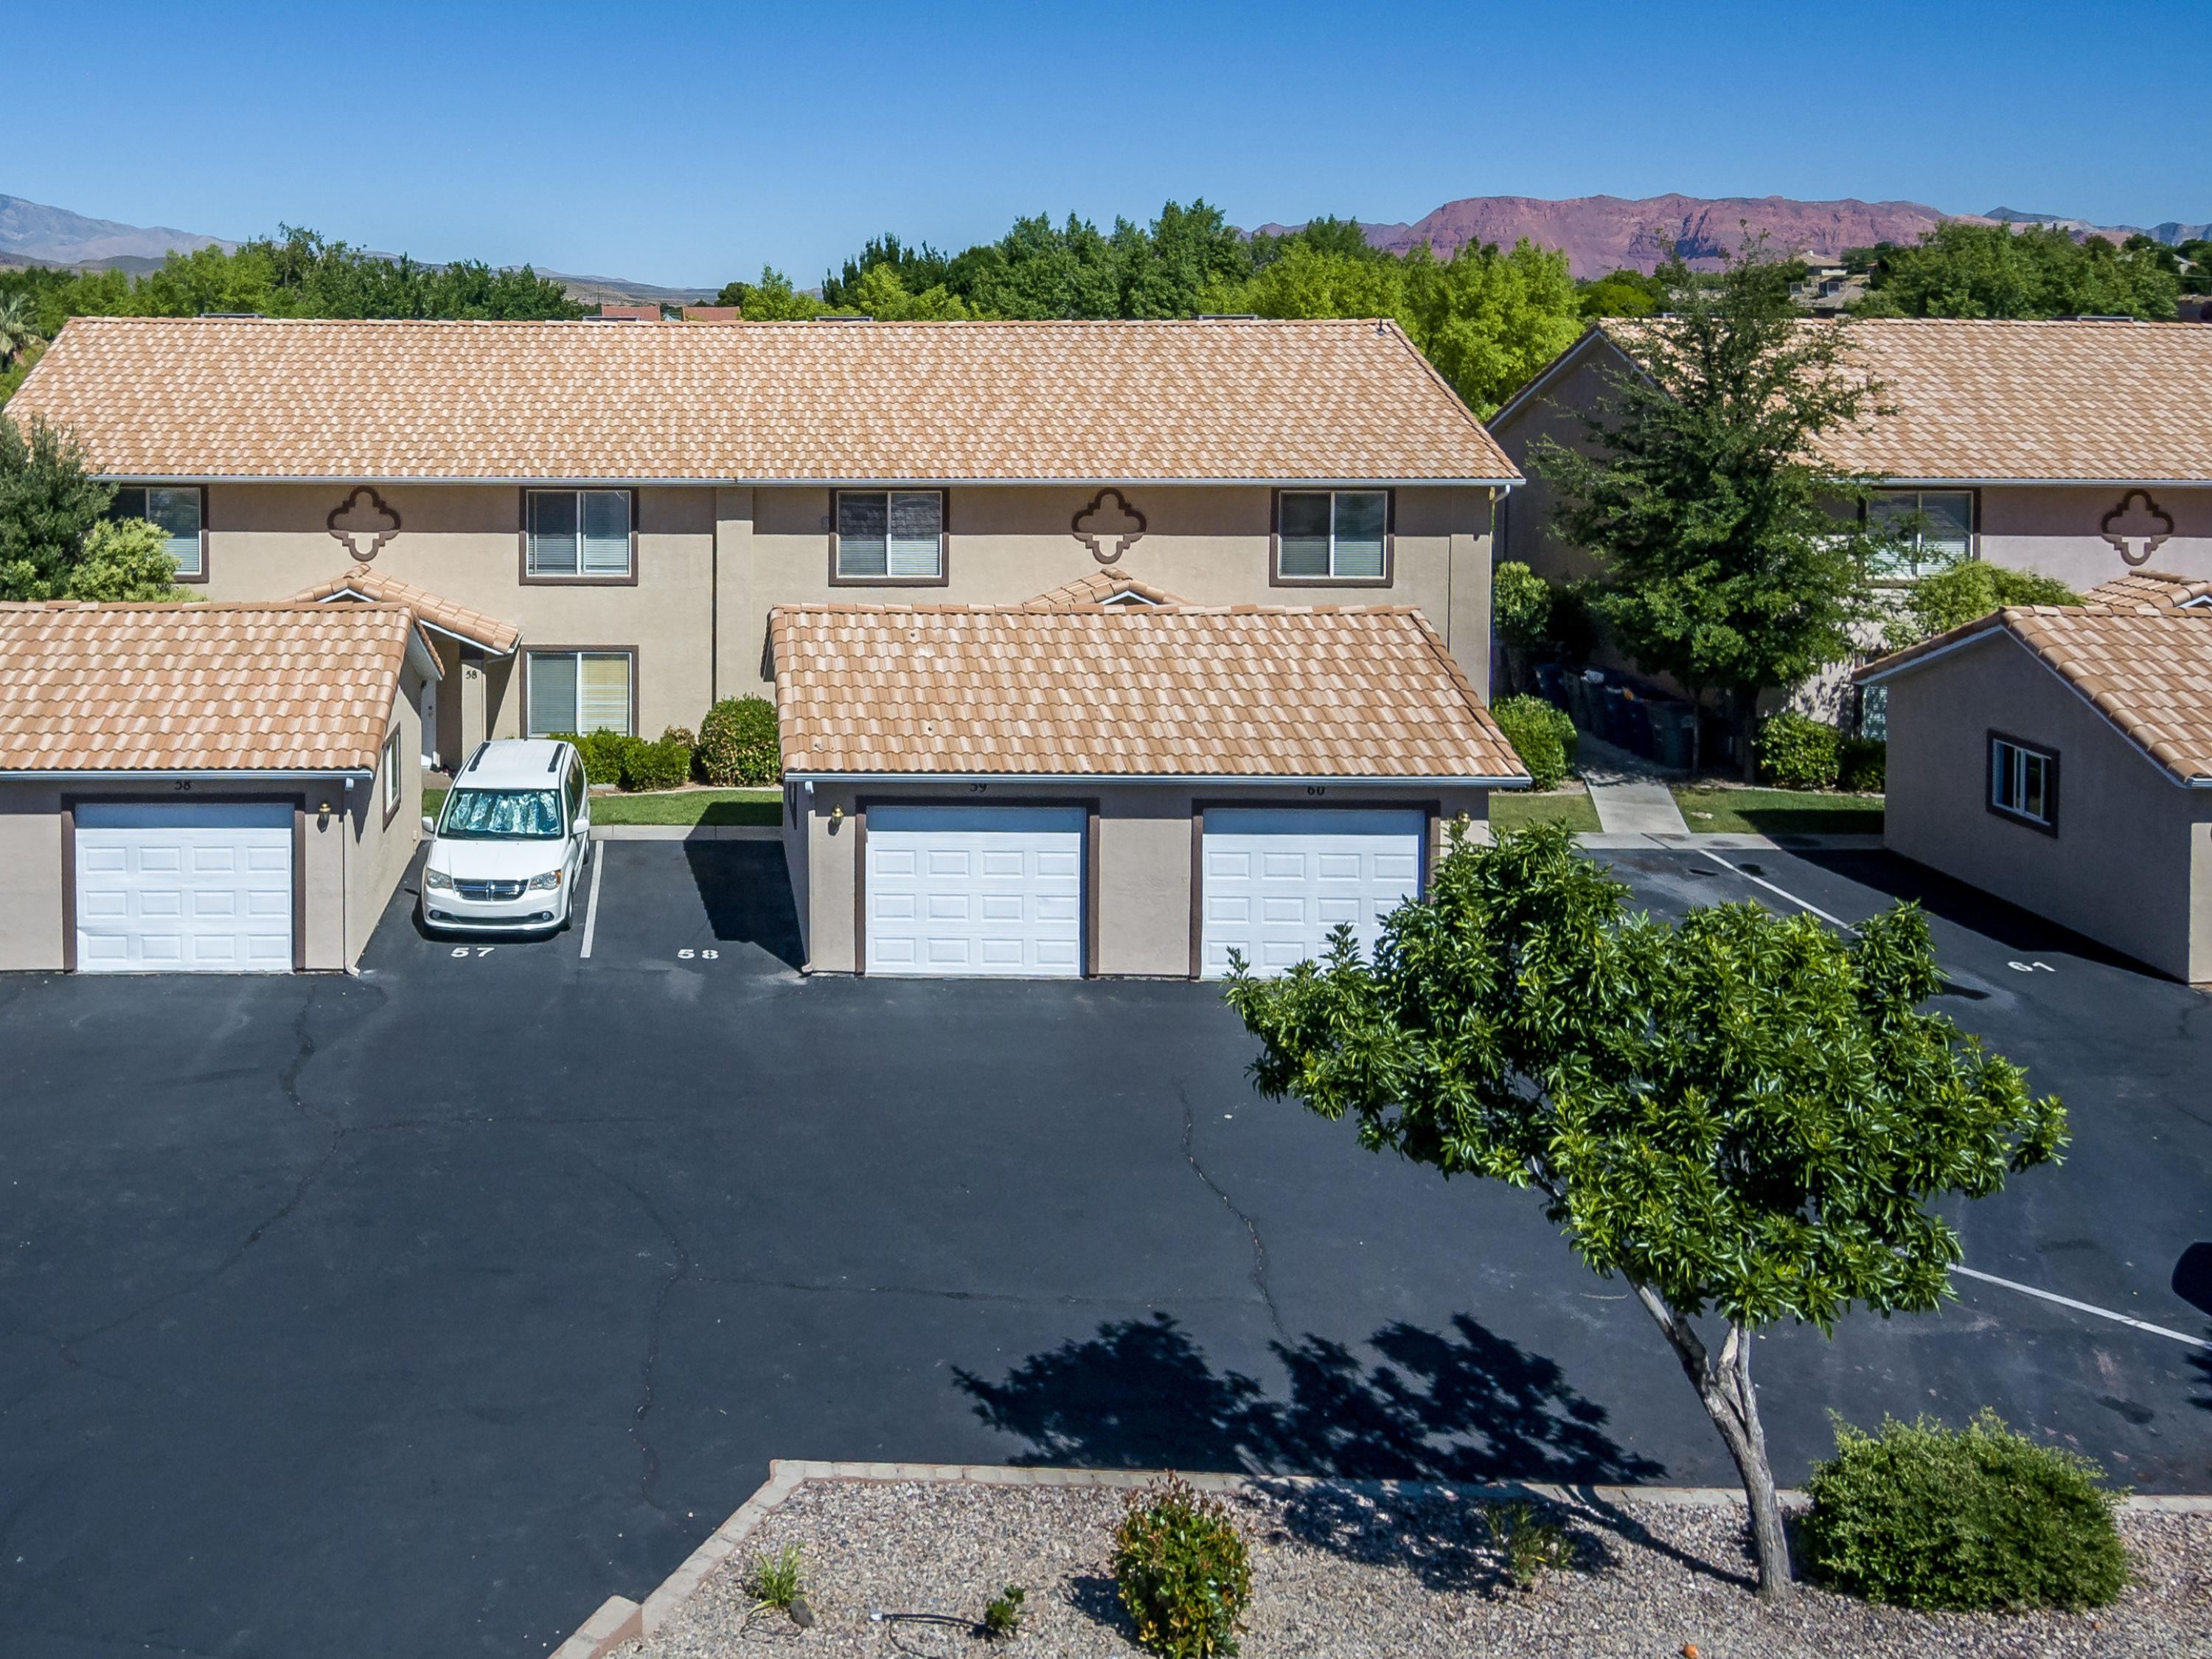 1301 W Indian Hills #59, St George in Washington County, UT 84770 Home for Sale